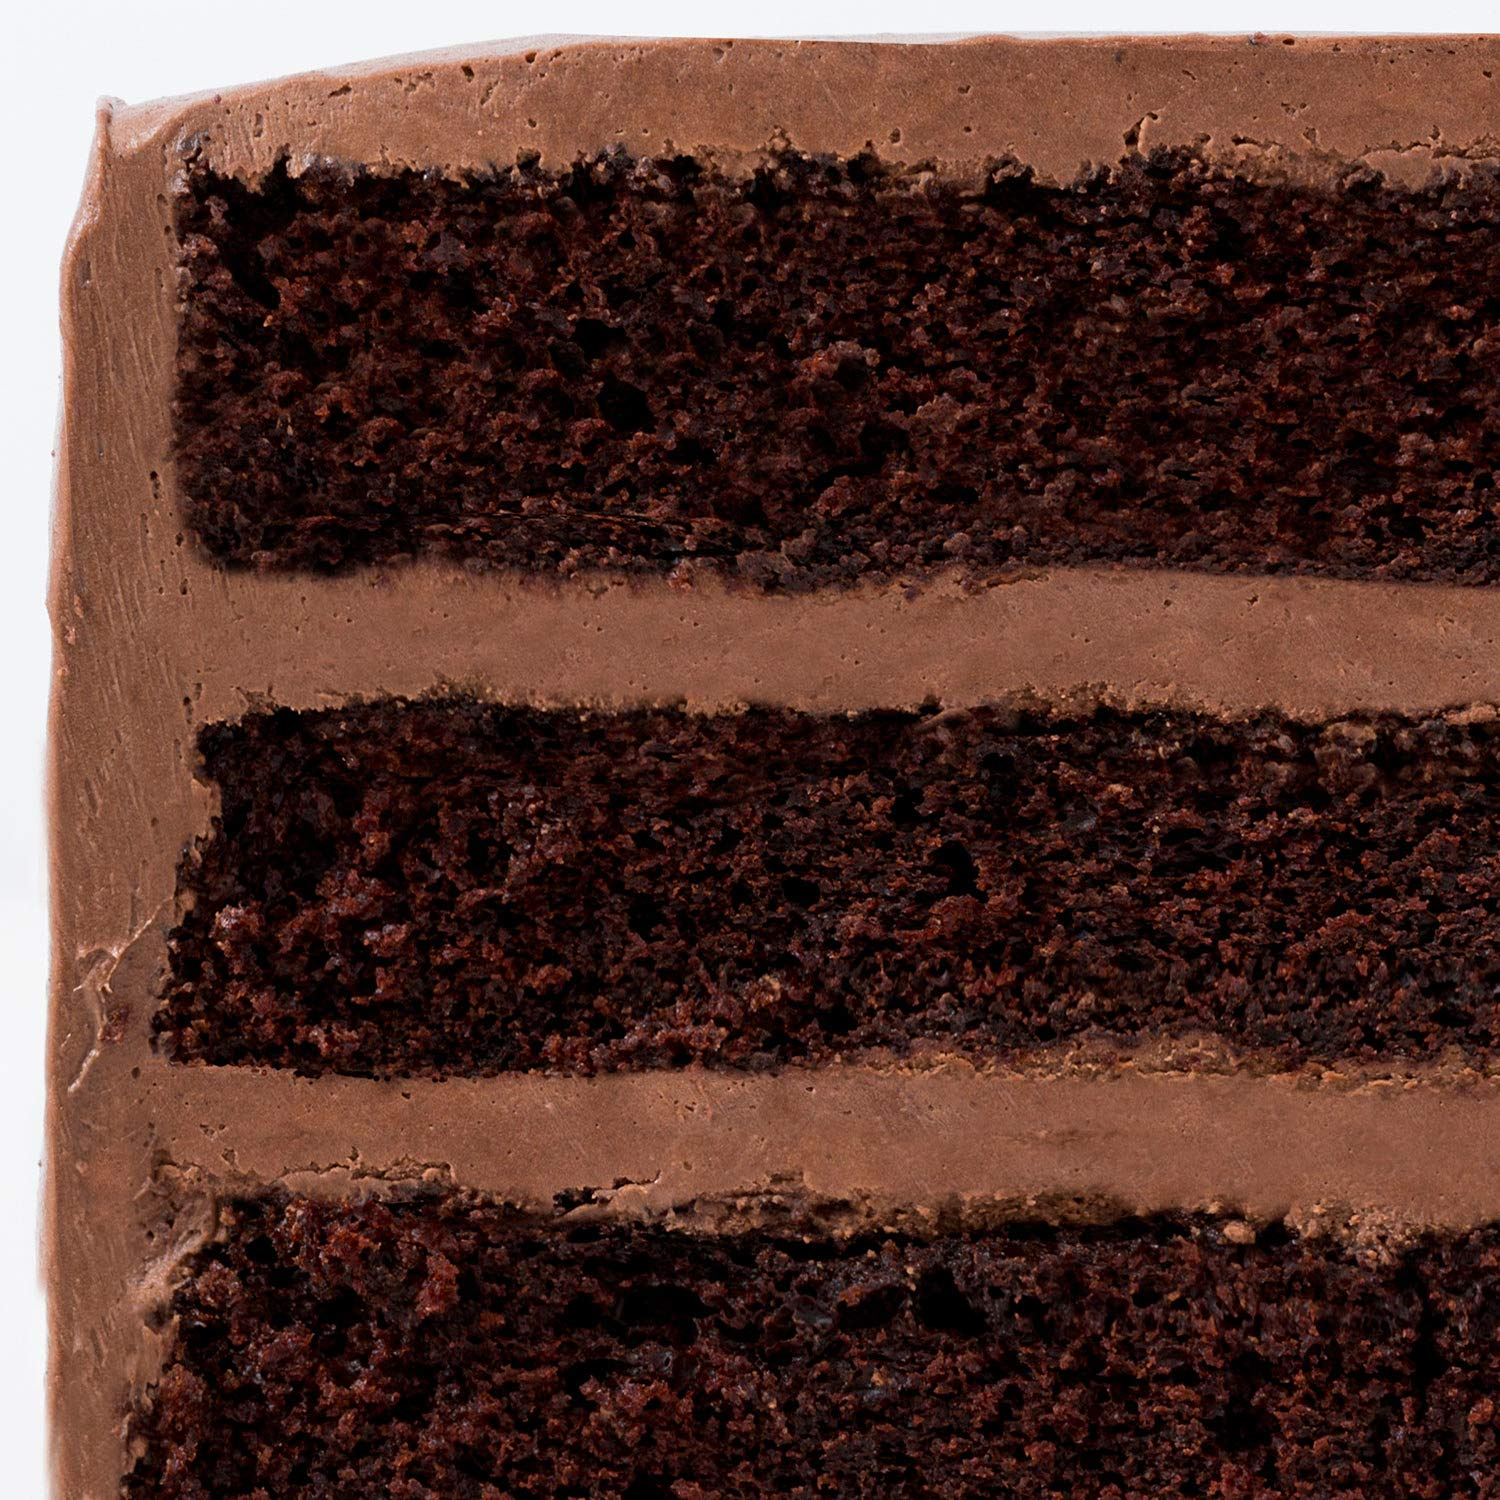 Miss Jones Baking Organic Buttercream Frosting, Perfect for Icing and Decorating, Vegan-Friendly: Rich Fudge Chocolate (Pack of 6)